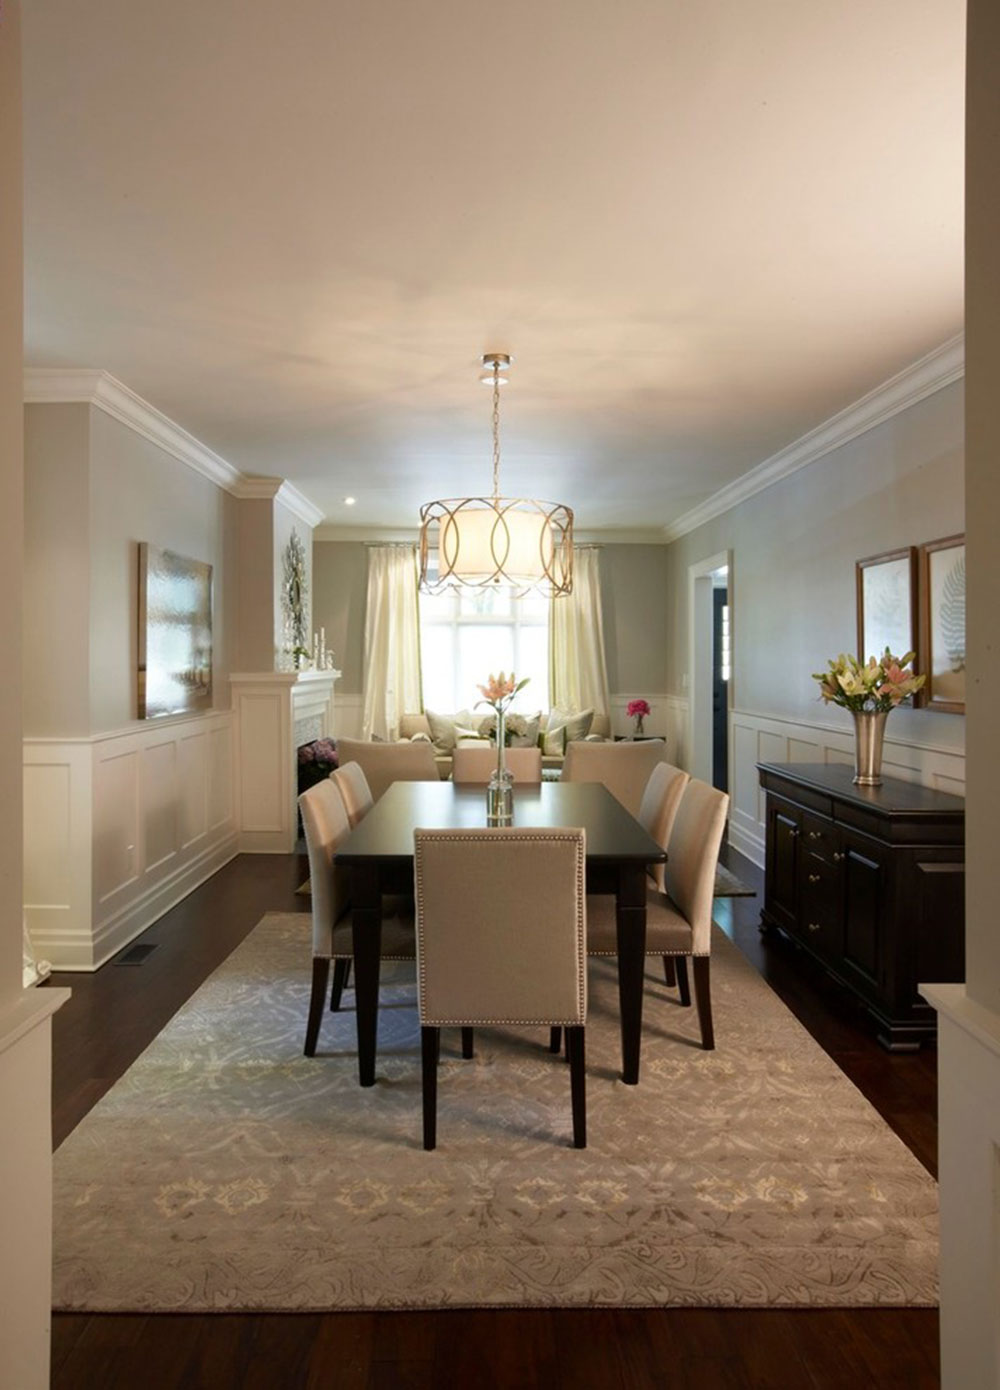 How to choose a chandelier for the dining room5 How to choose a chandelier for the dining room